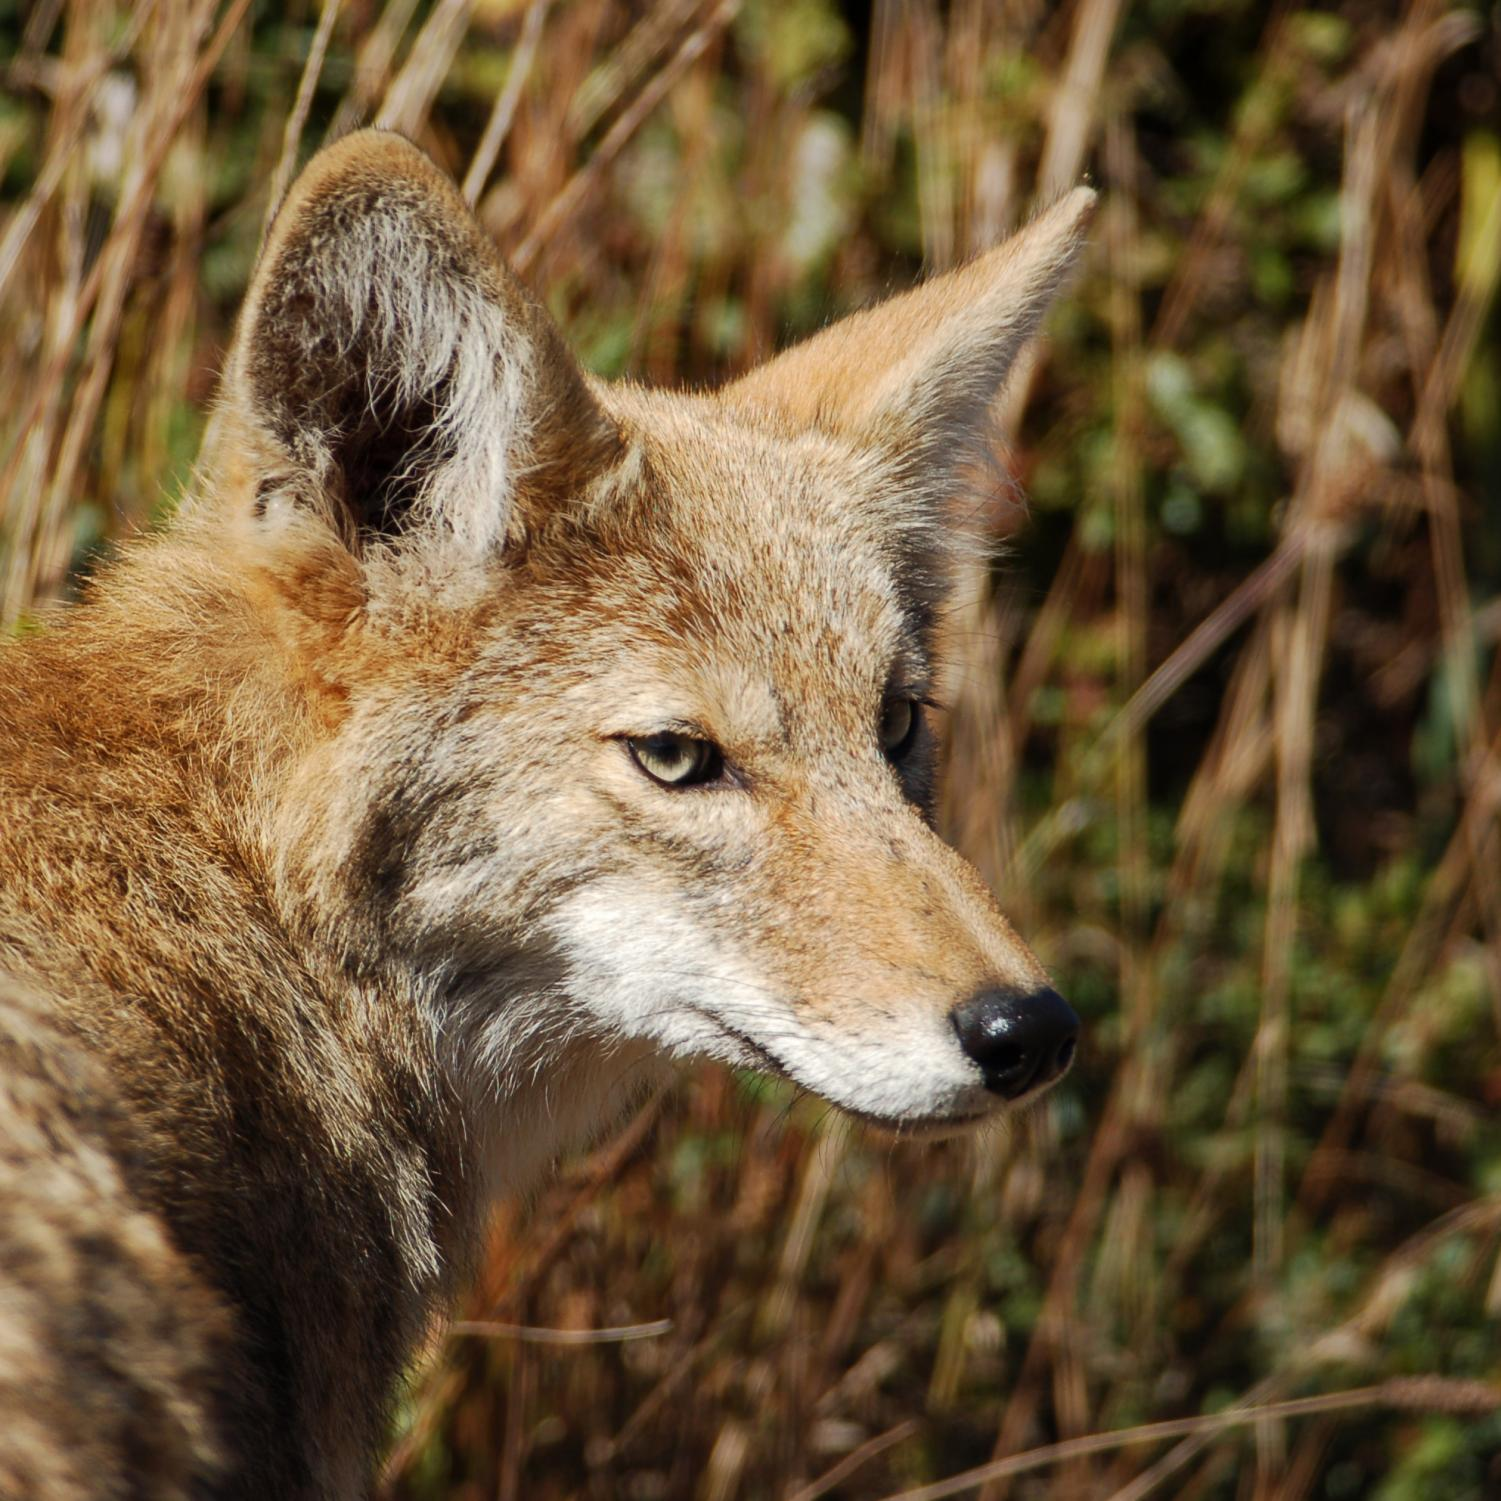 File photo of a coyote via Wikicommons.